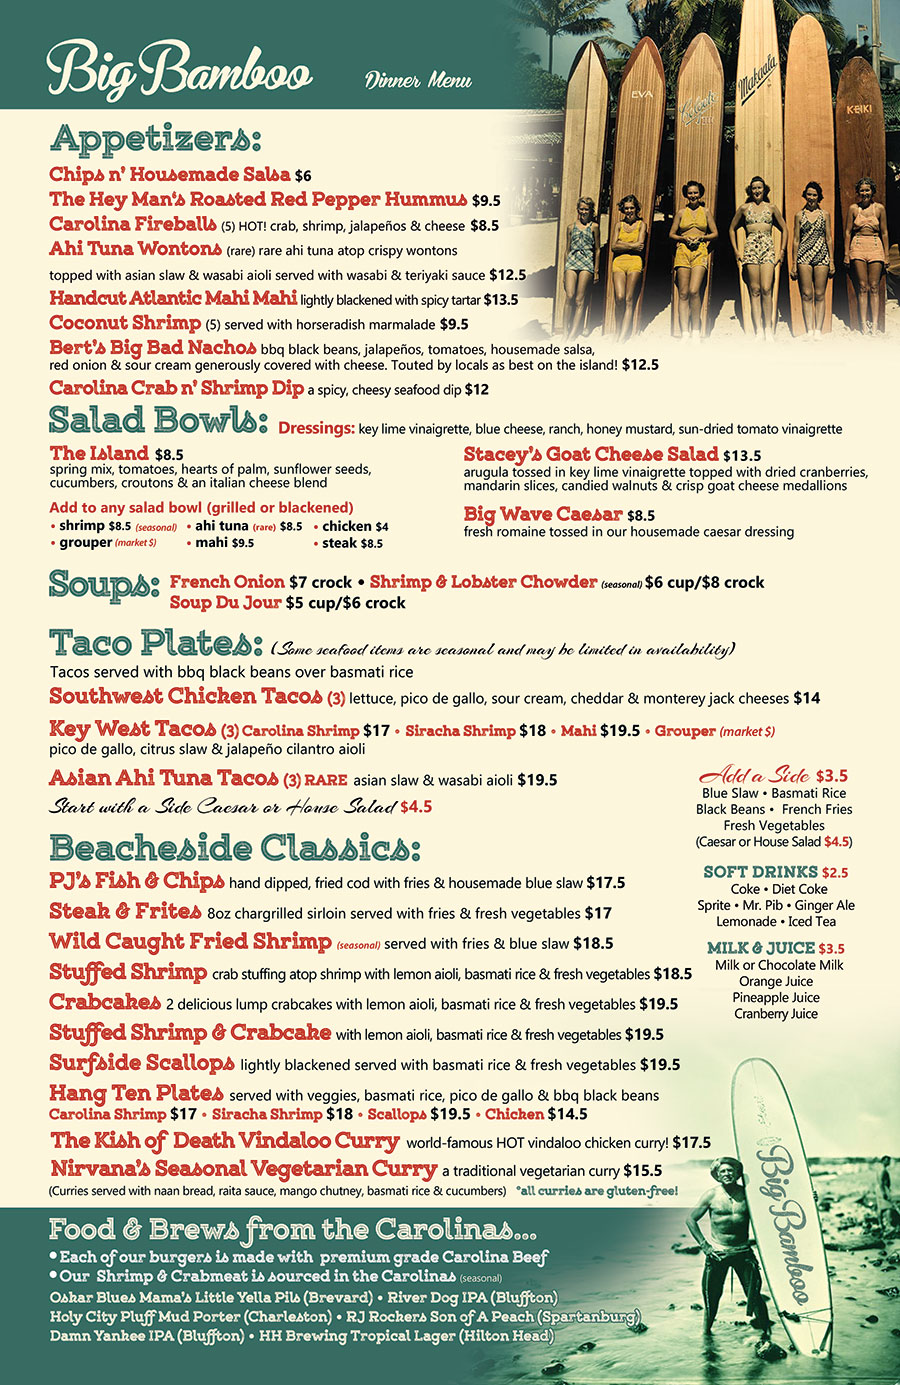 Big Bamboo Cafe Dinner Menu